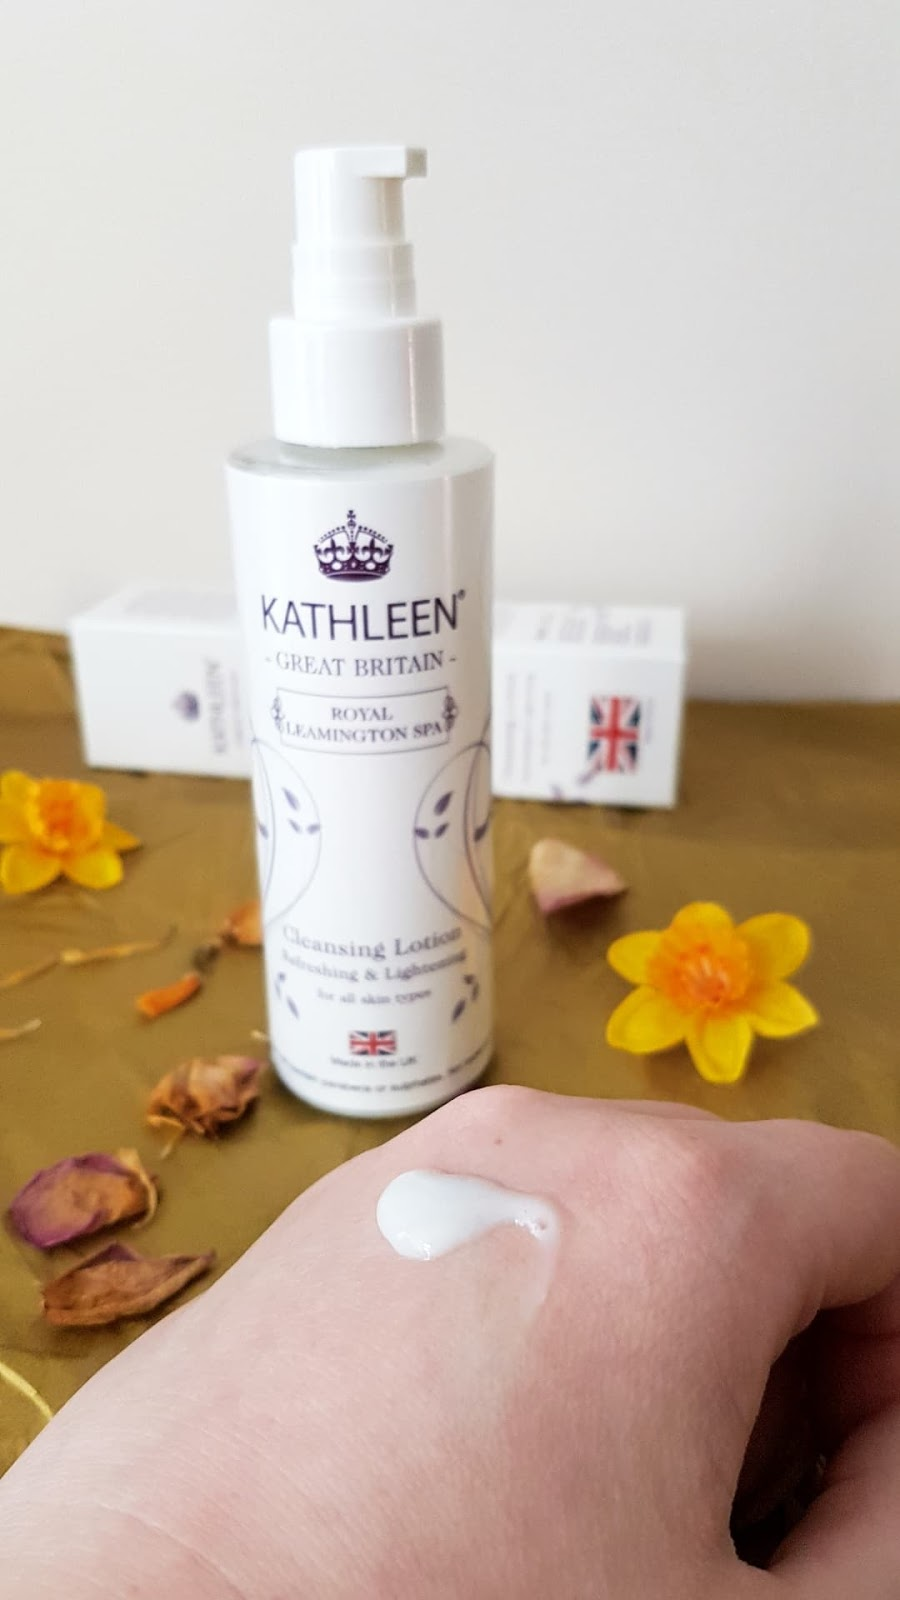 Kathleen Natural Skincare Review - Cleansing Lotion